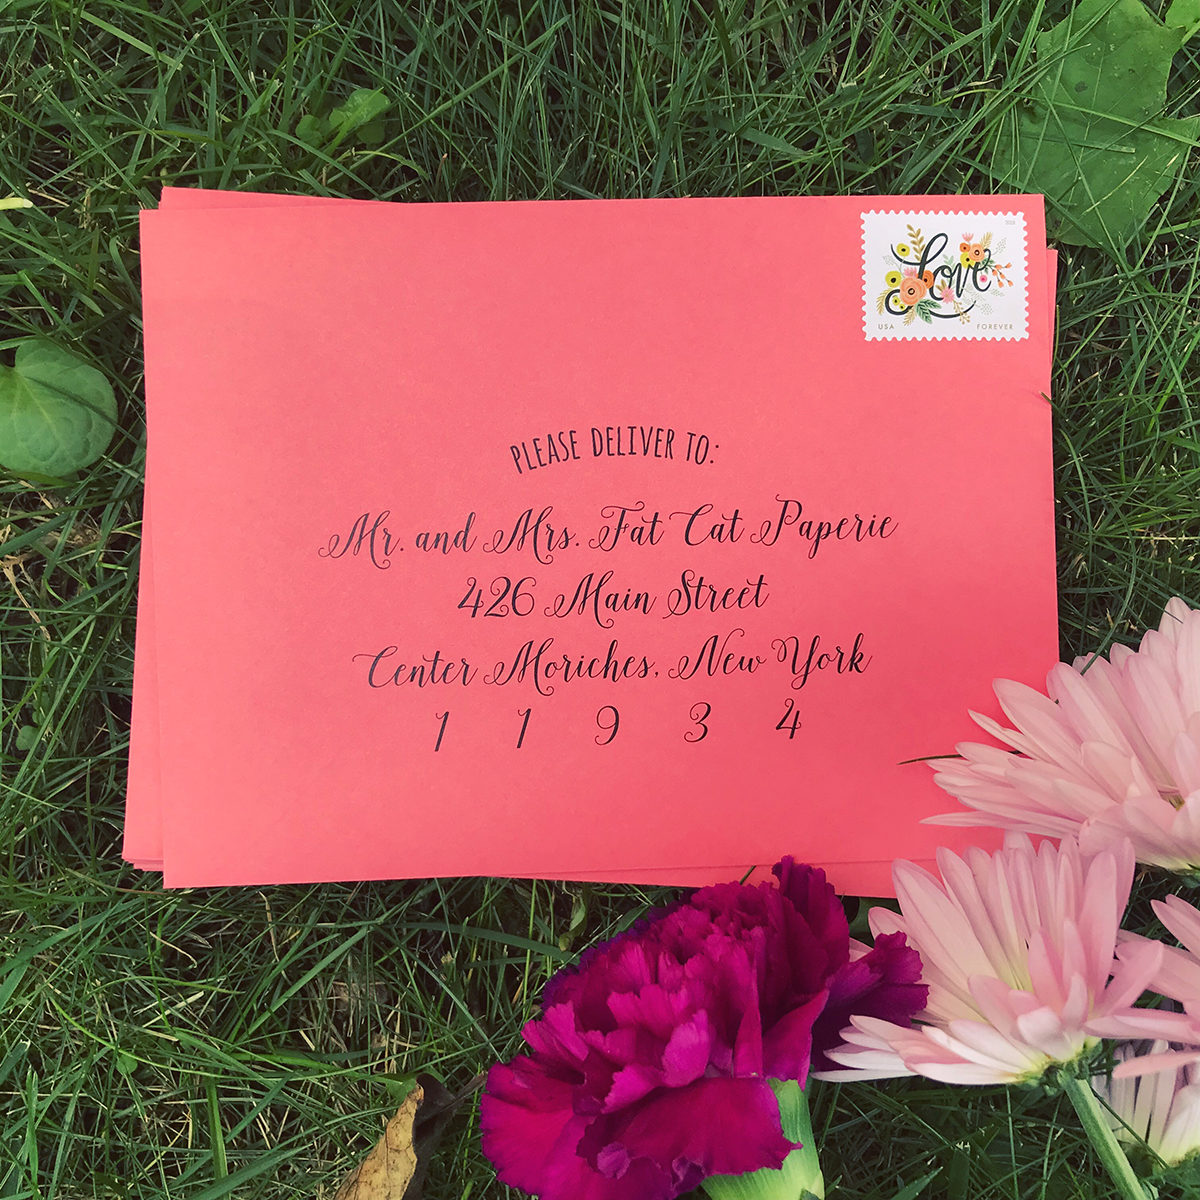 Invitation Guest Addressing, black ink on coral envelope, Rifle Paper love stamps, sitting on grass with flowers